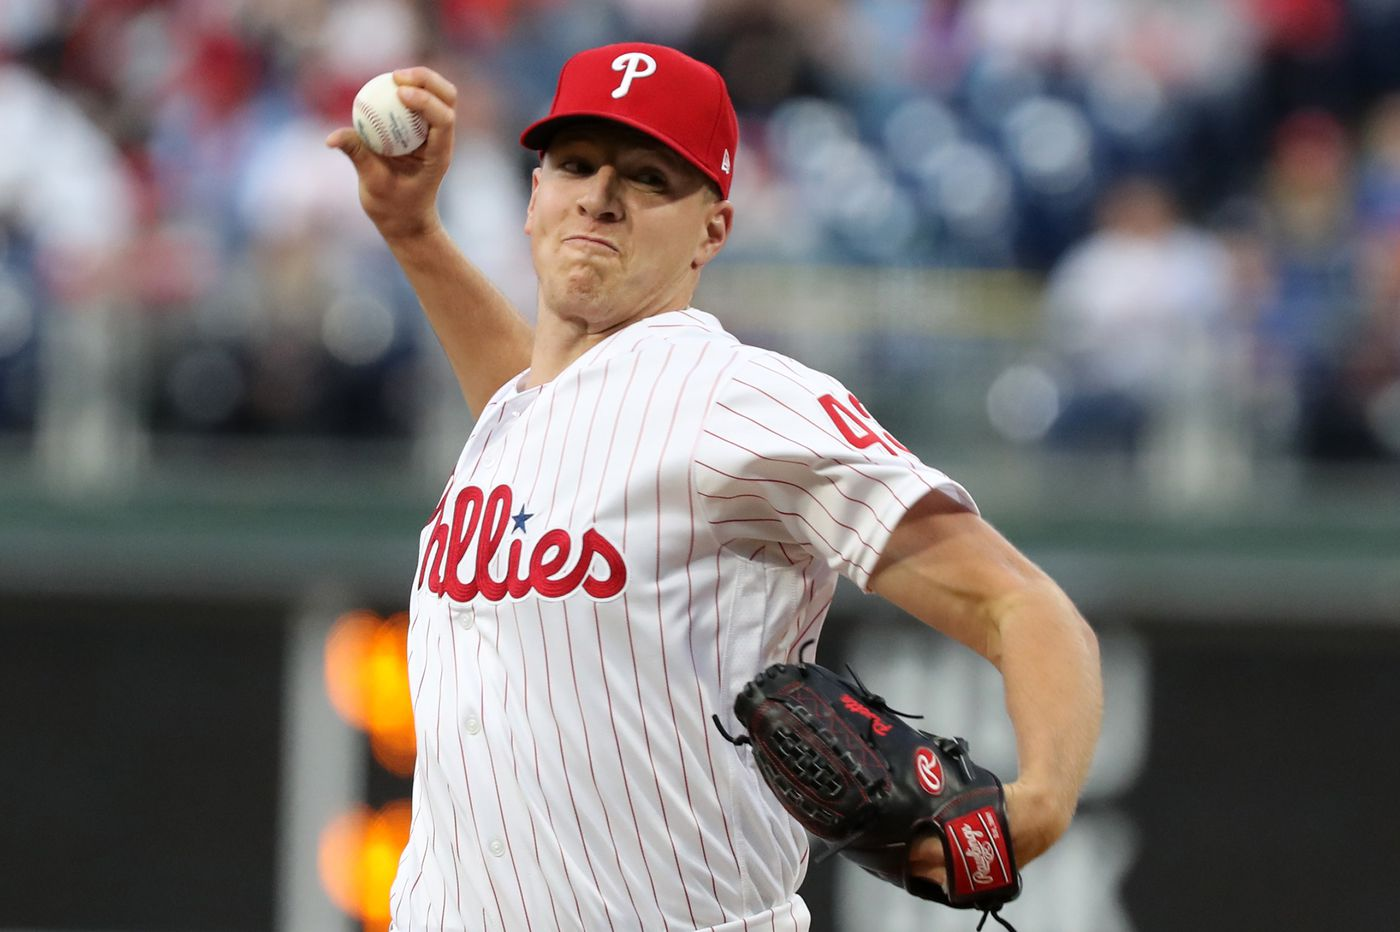 Like the Phillies pitchers before him, Nick Pivetta will bounce back from demotion | Bob Brookover